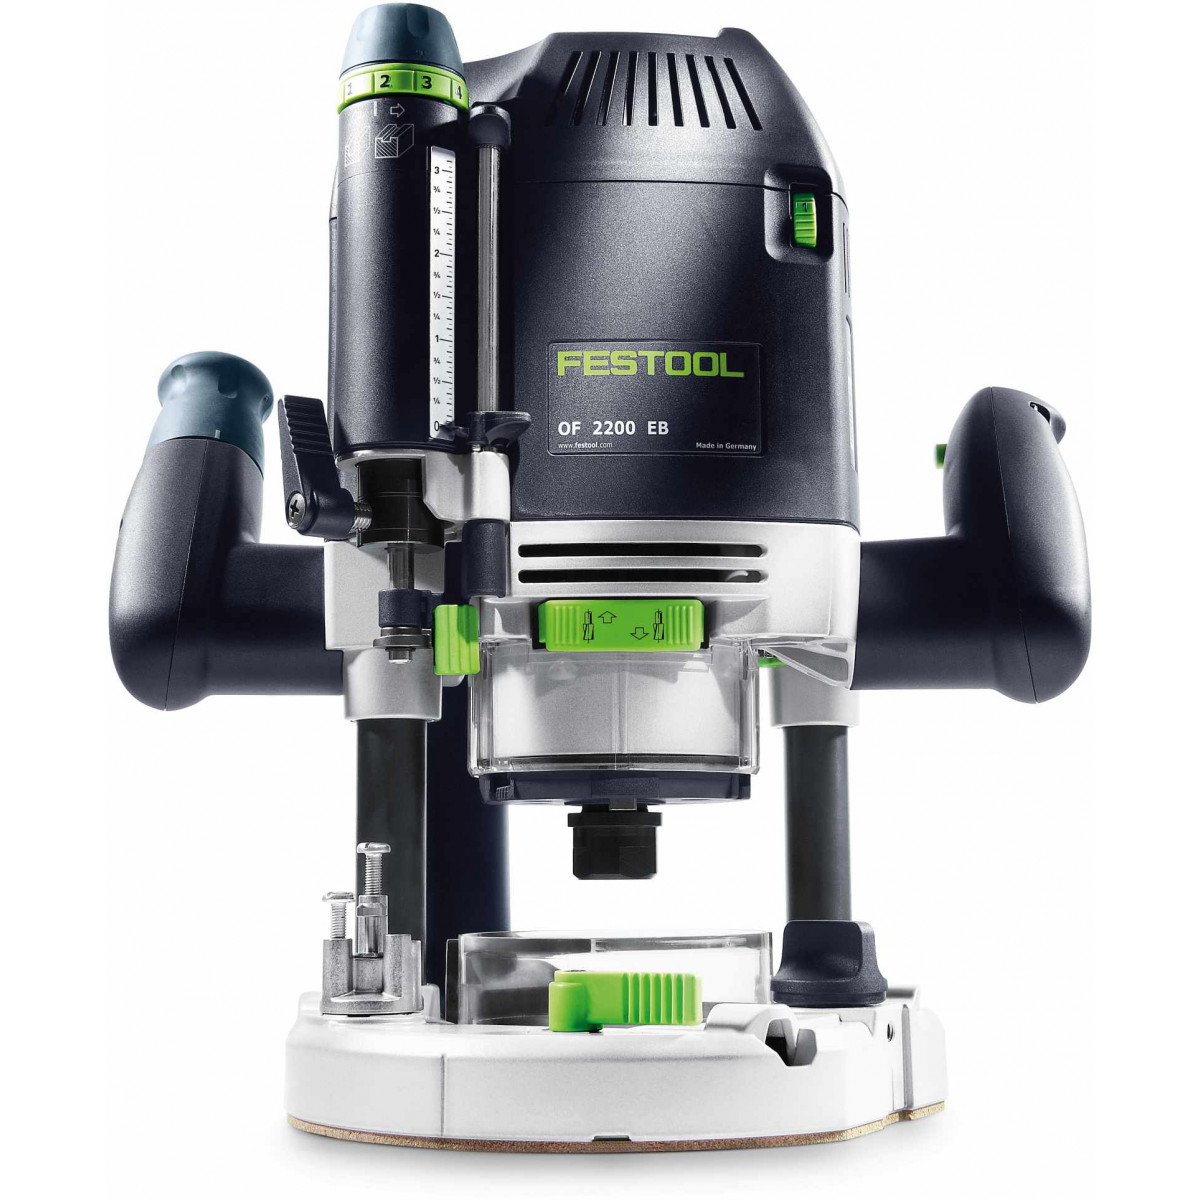 Festool OF 2200 EB Plunge Router